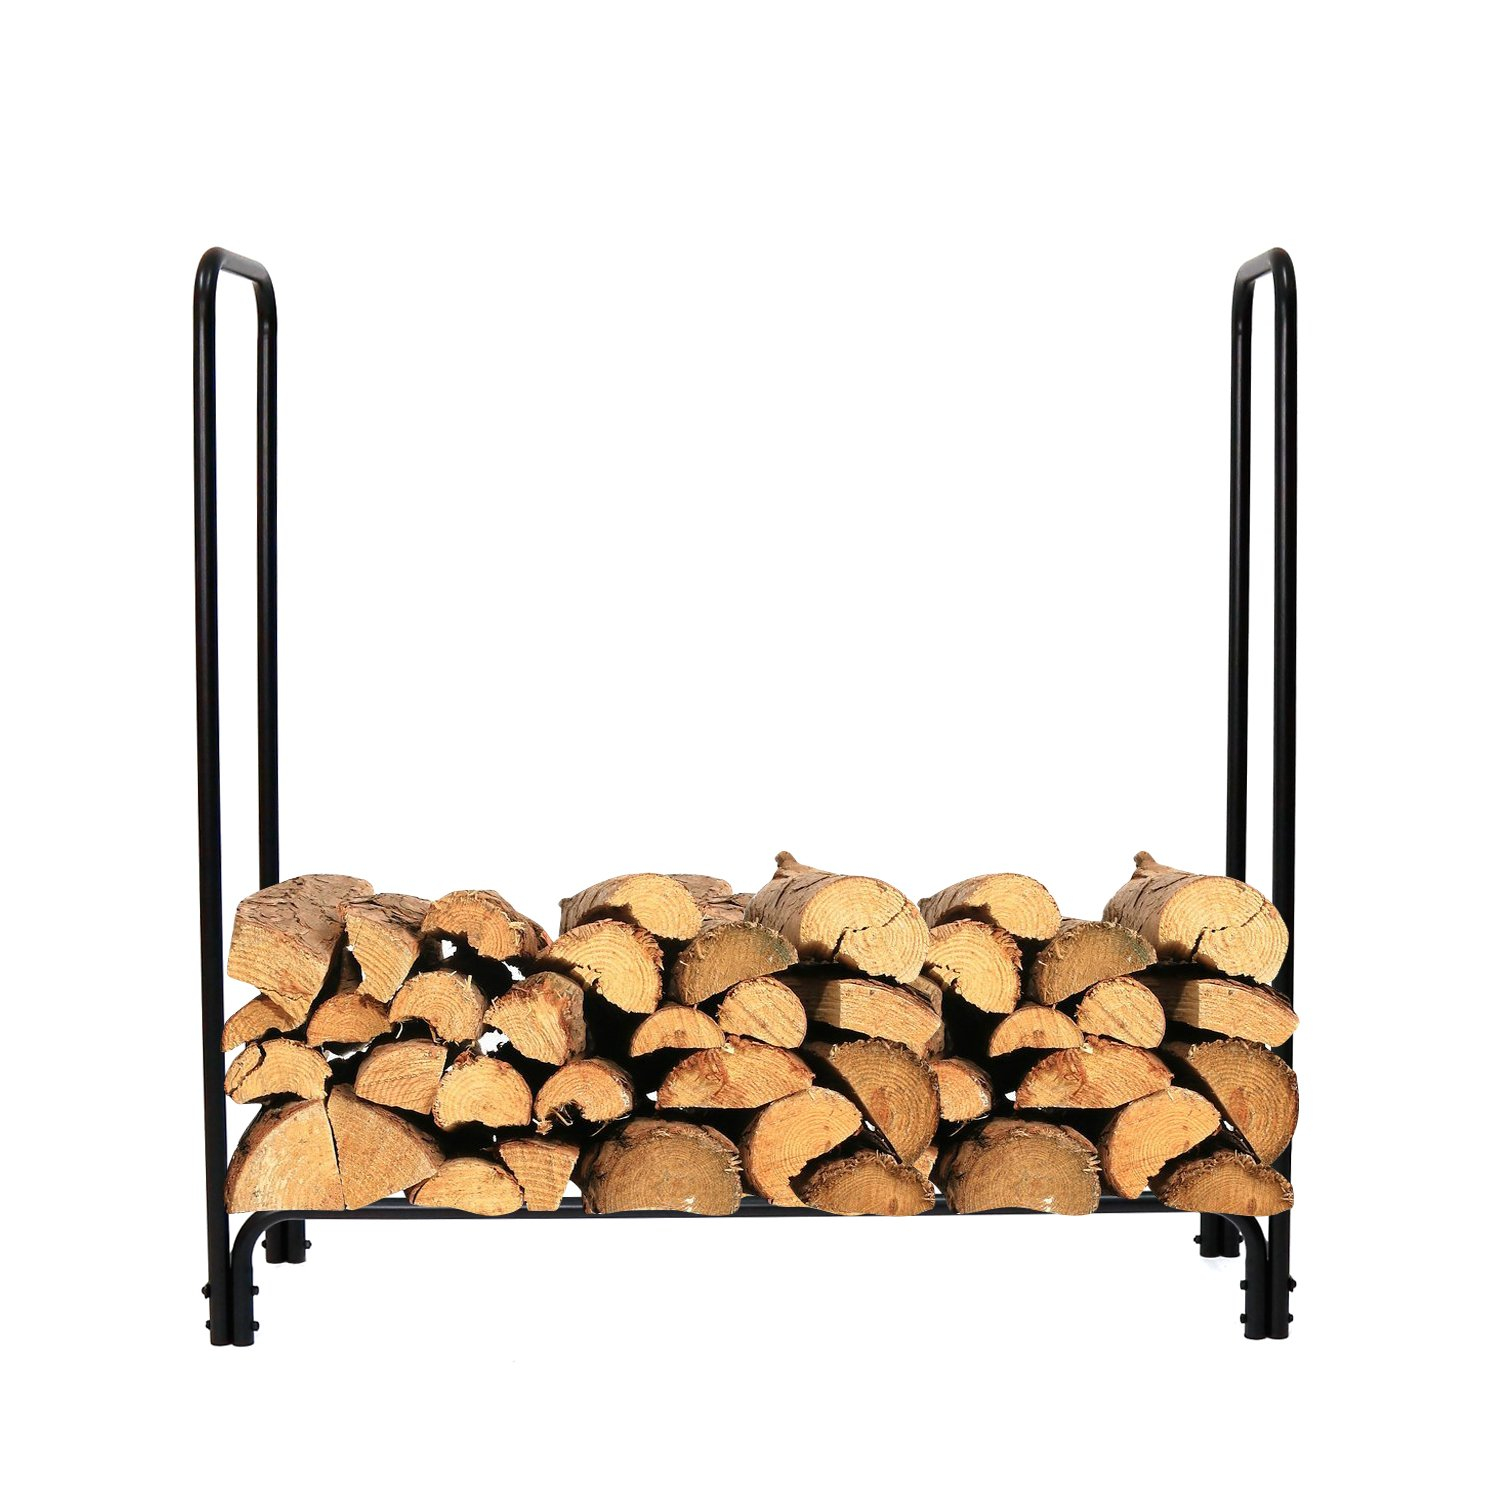 Peach Tree Heavy Duty Firewood Rack, Black, 4-Feet